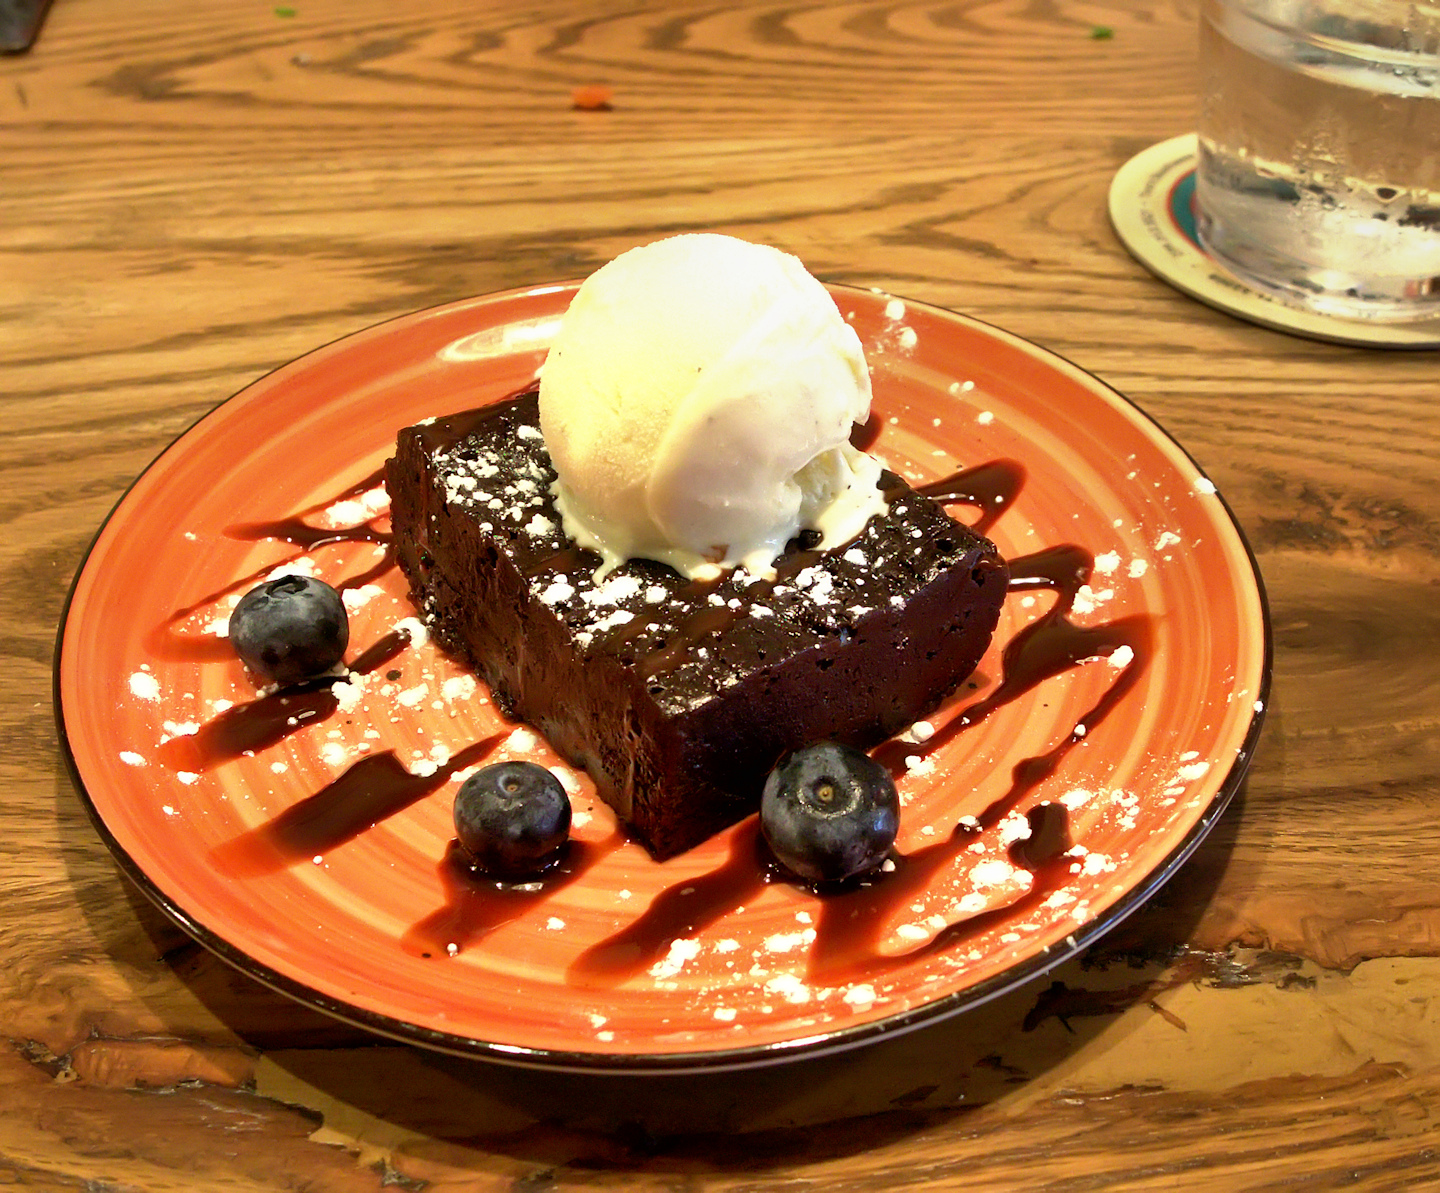 Hatch chili red wine sauce brownie with vanilla ice cream